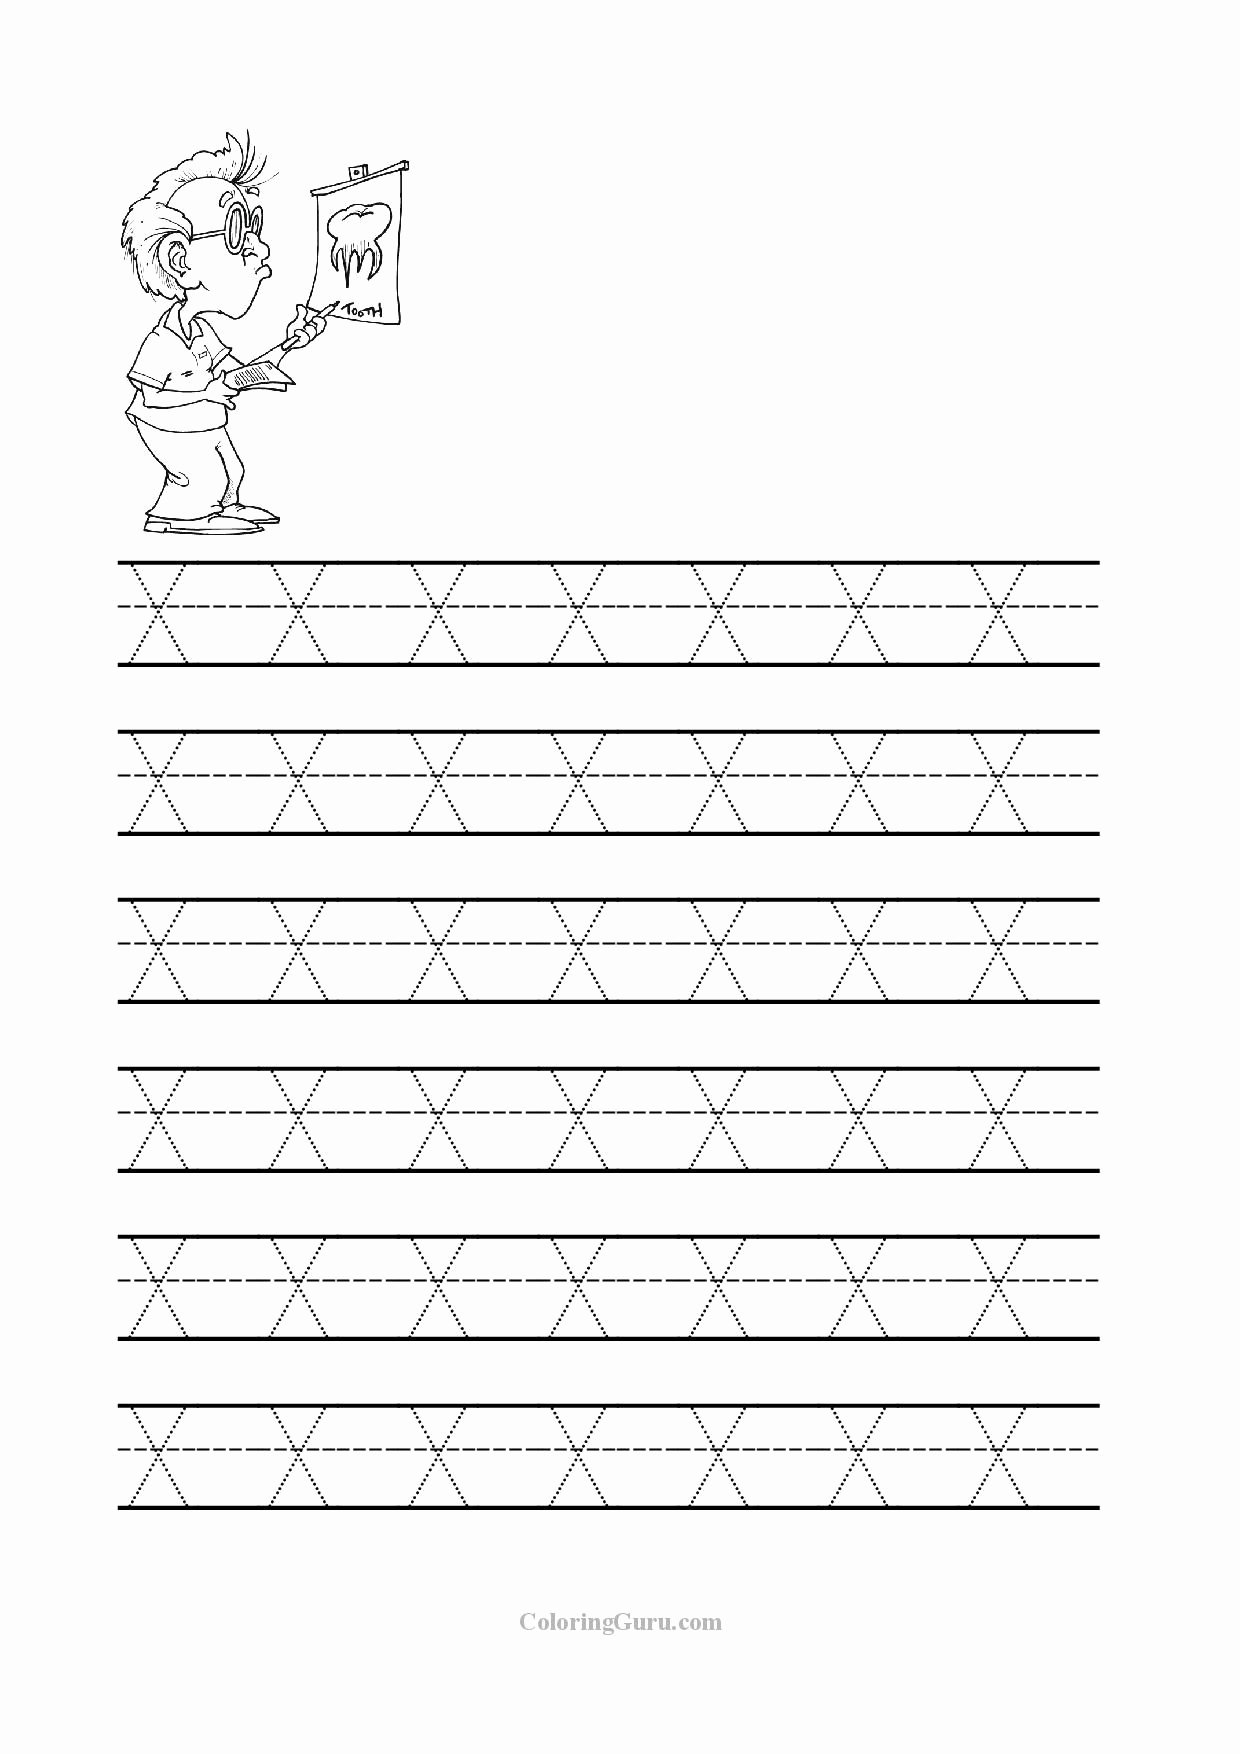 X Worksheets for Preschoolers Lovely Free Printable Tracing Letter X Worksheets for Preschool